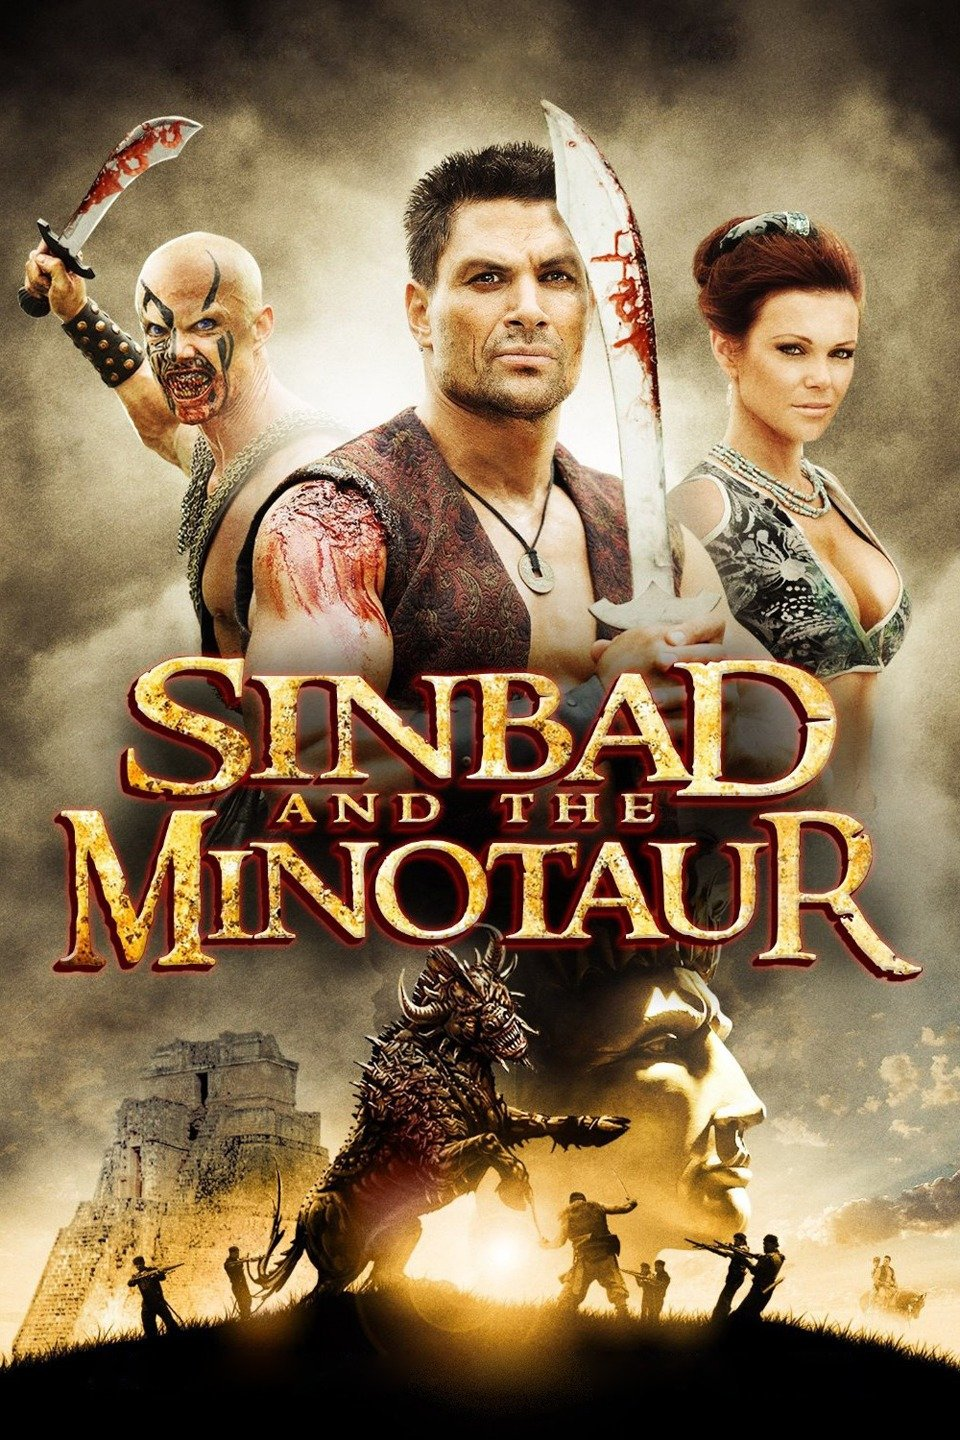 Sinbad and the Minotaur-Sinbad and the Minotaur